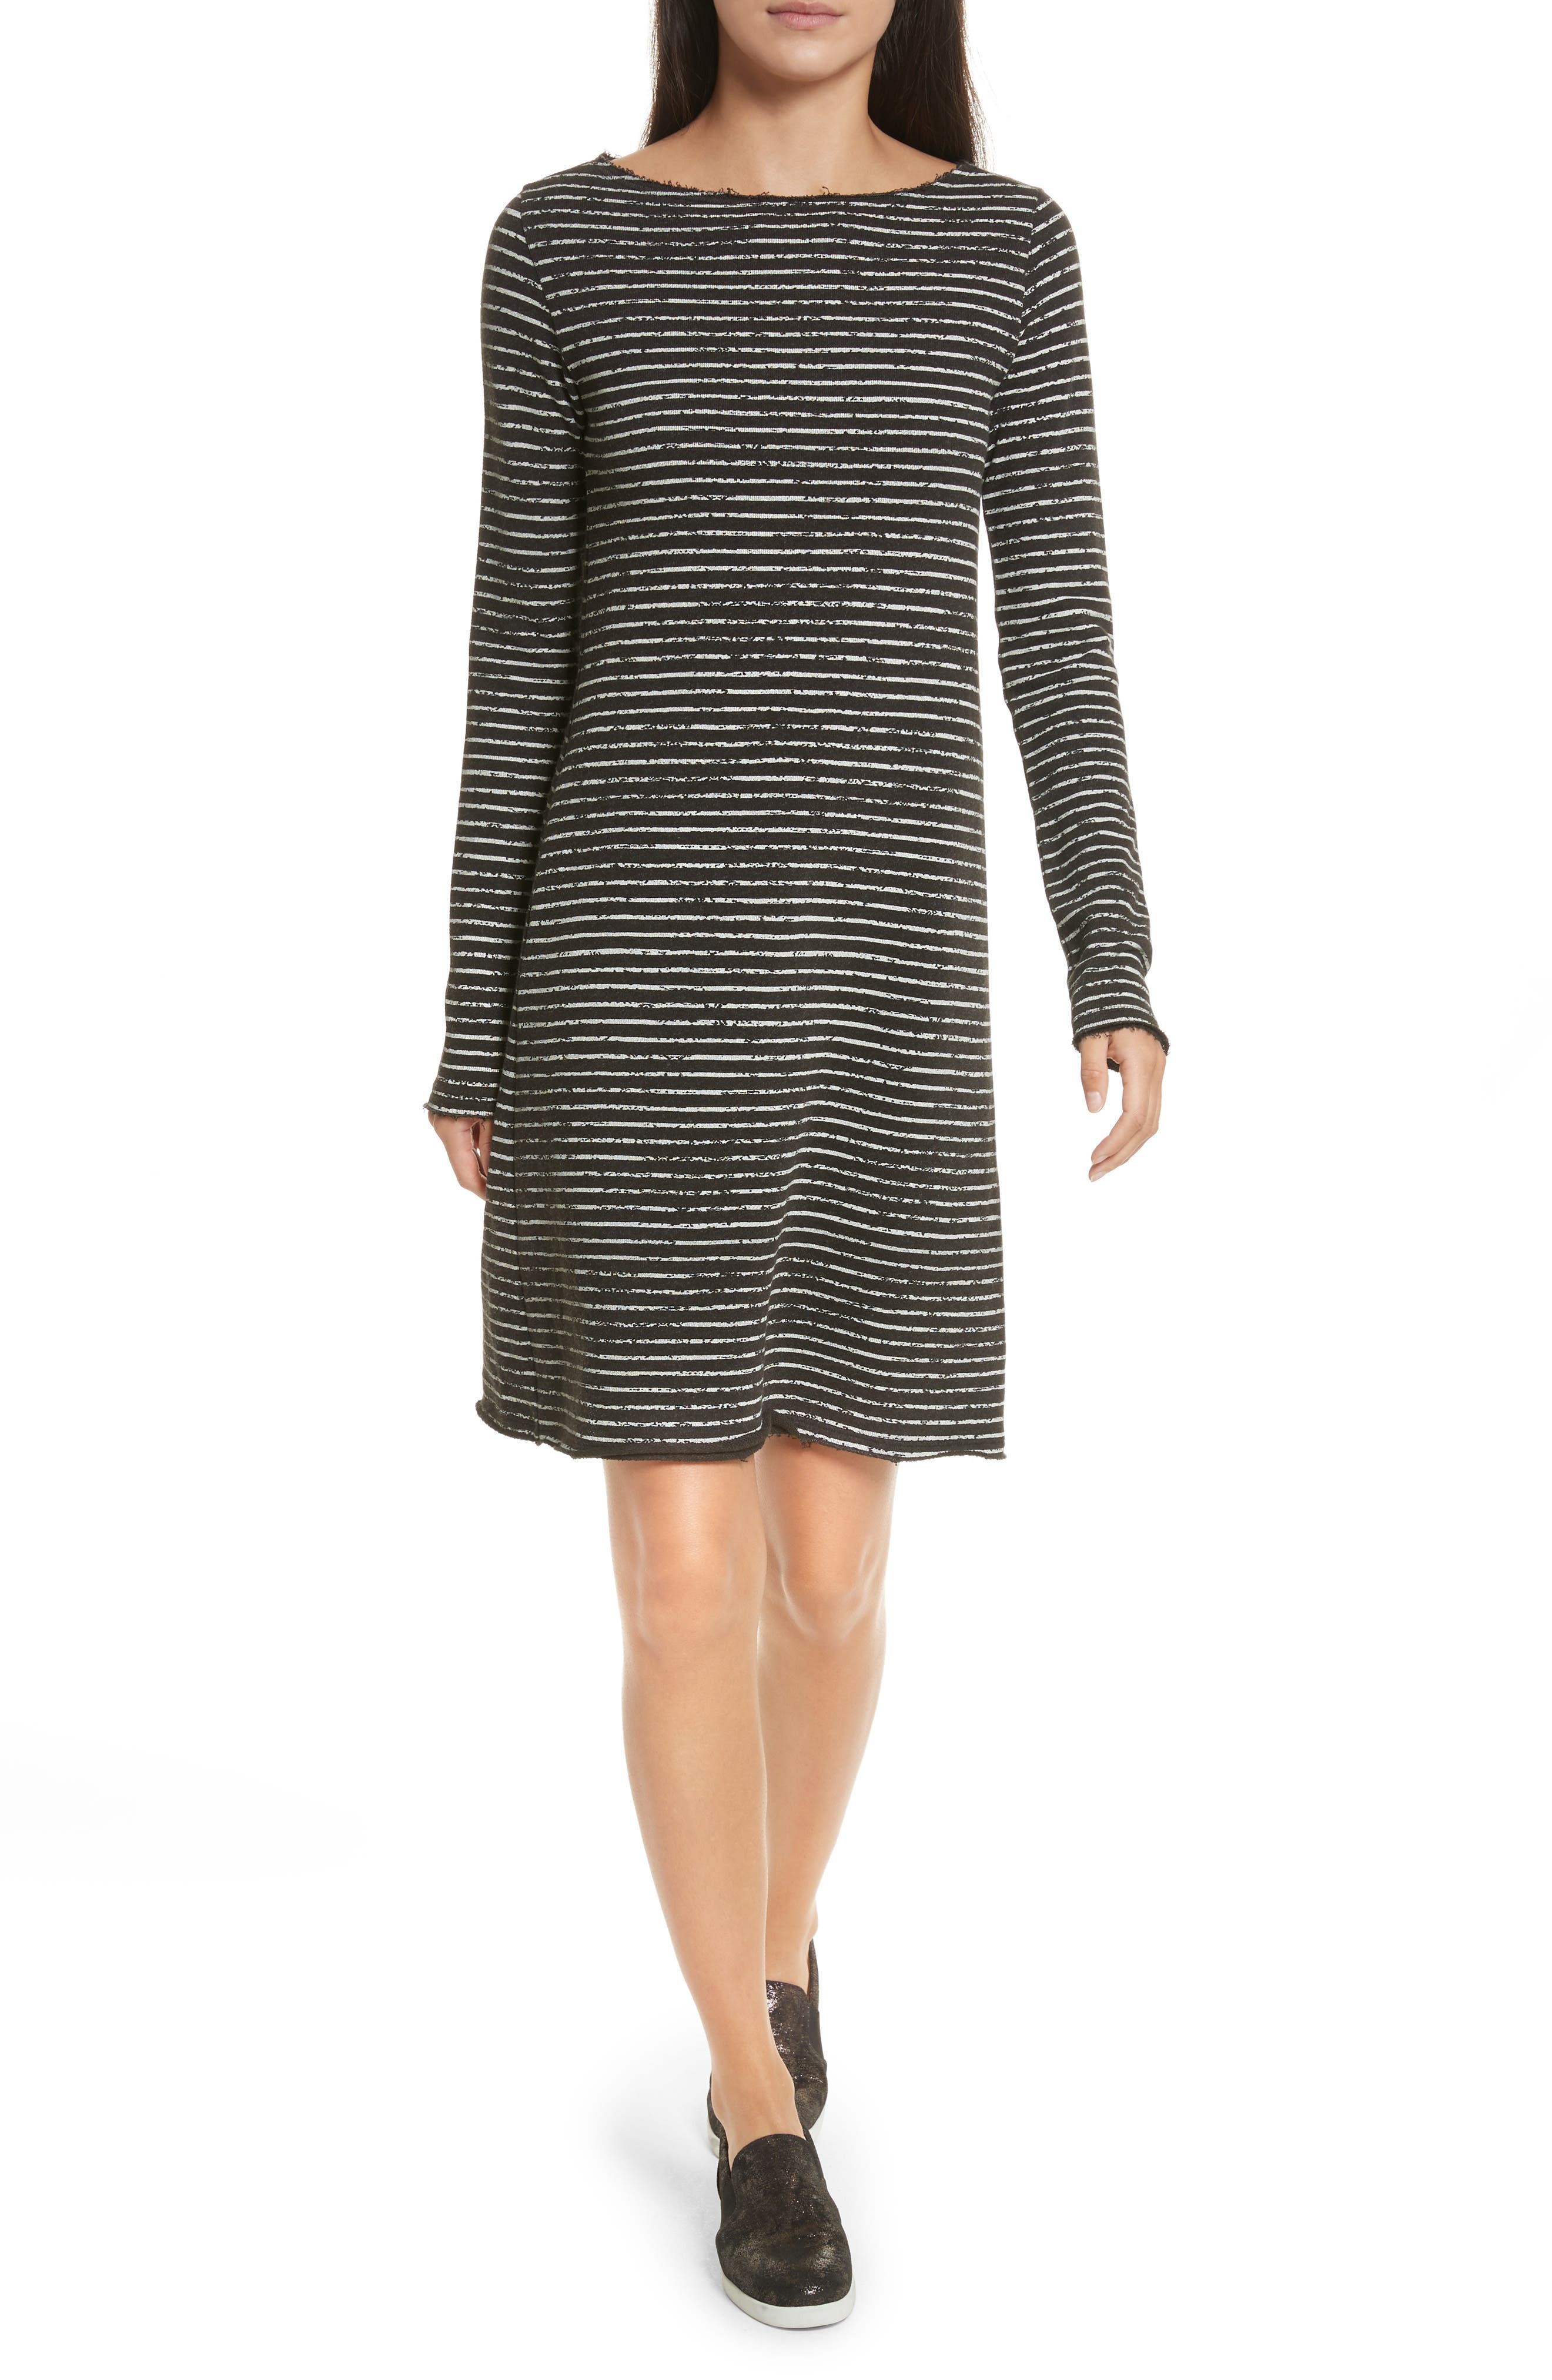 Broken Stripe French Terry Dress,                         Main,                         color, Charcoal Combo Stripe